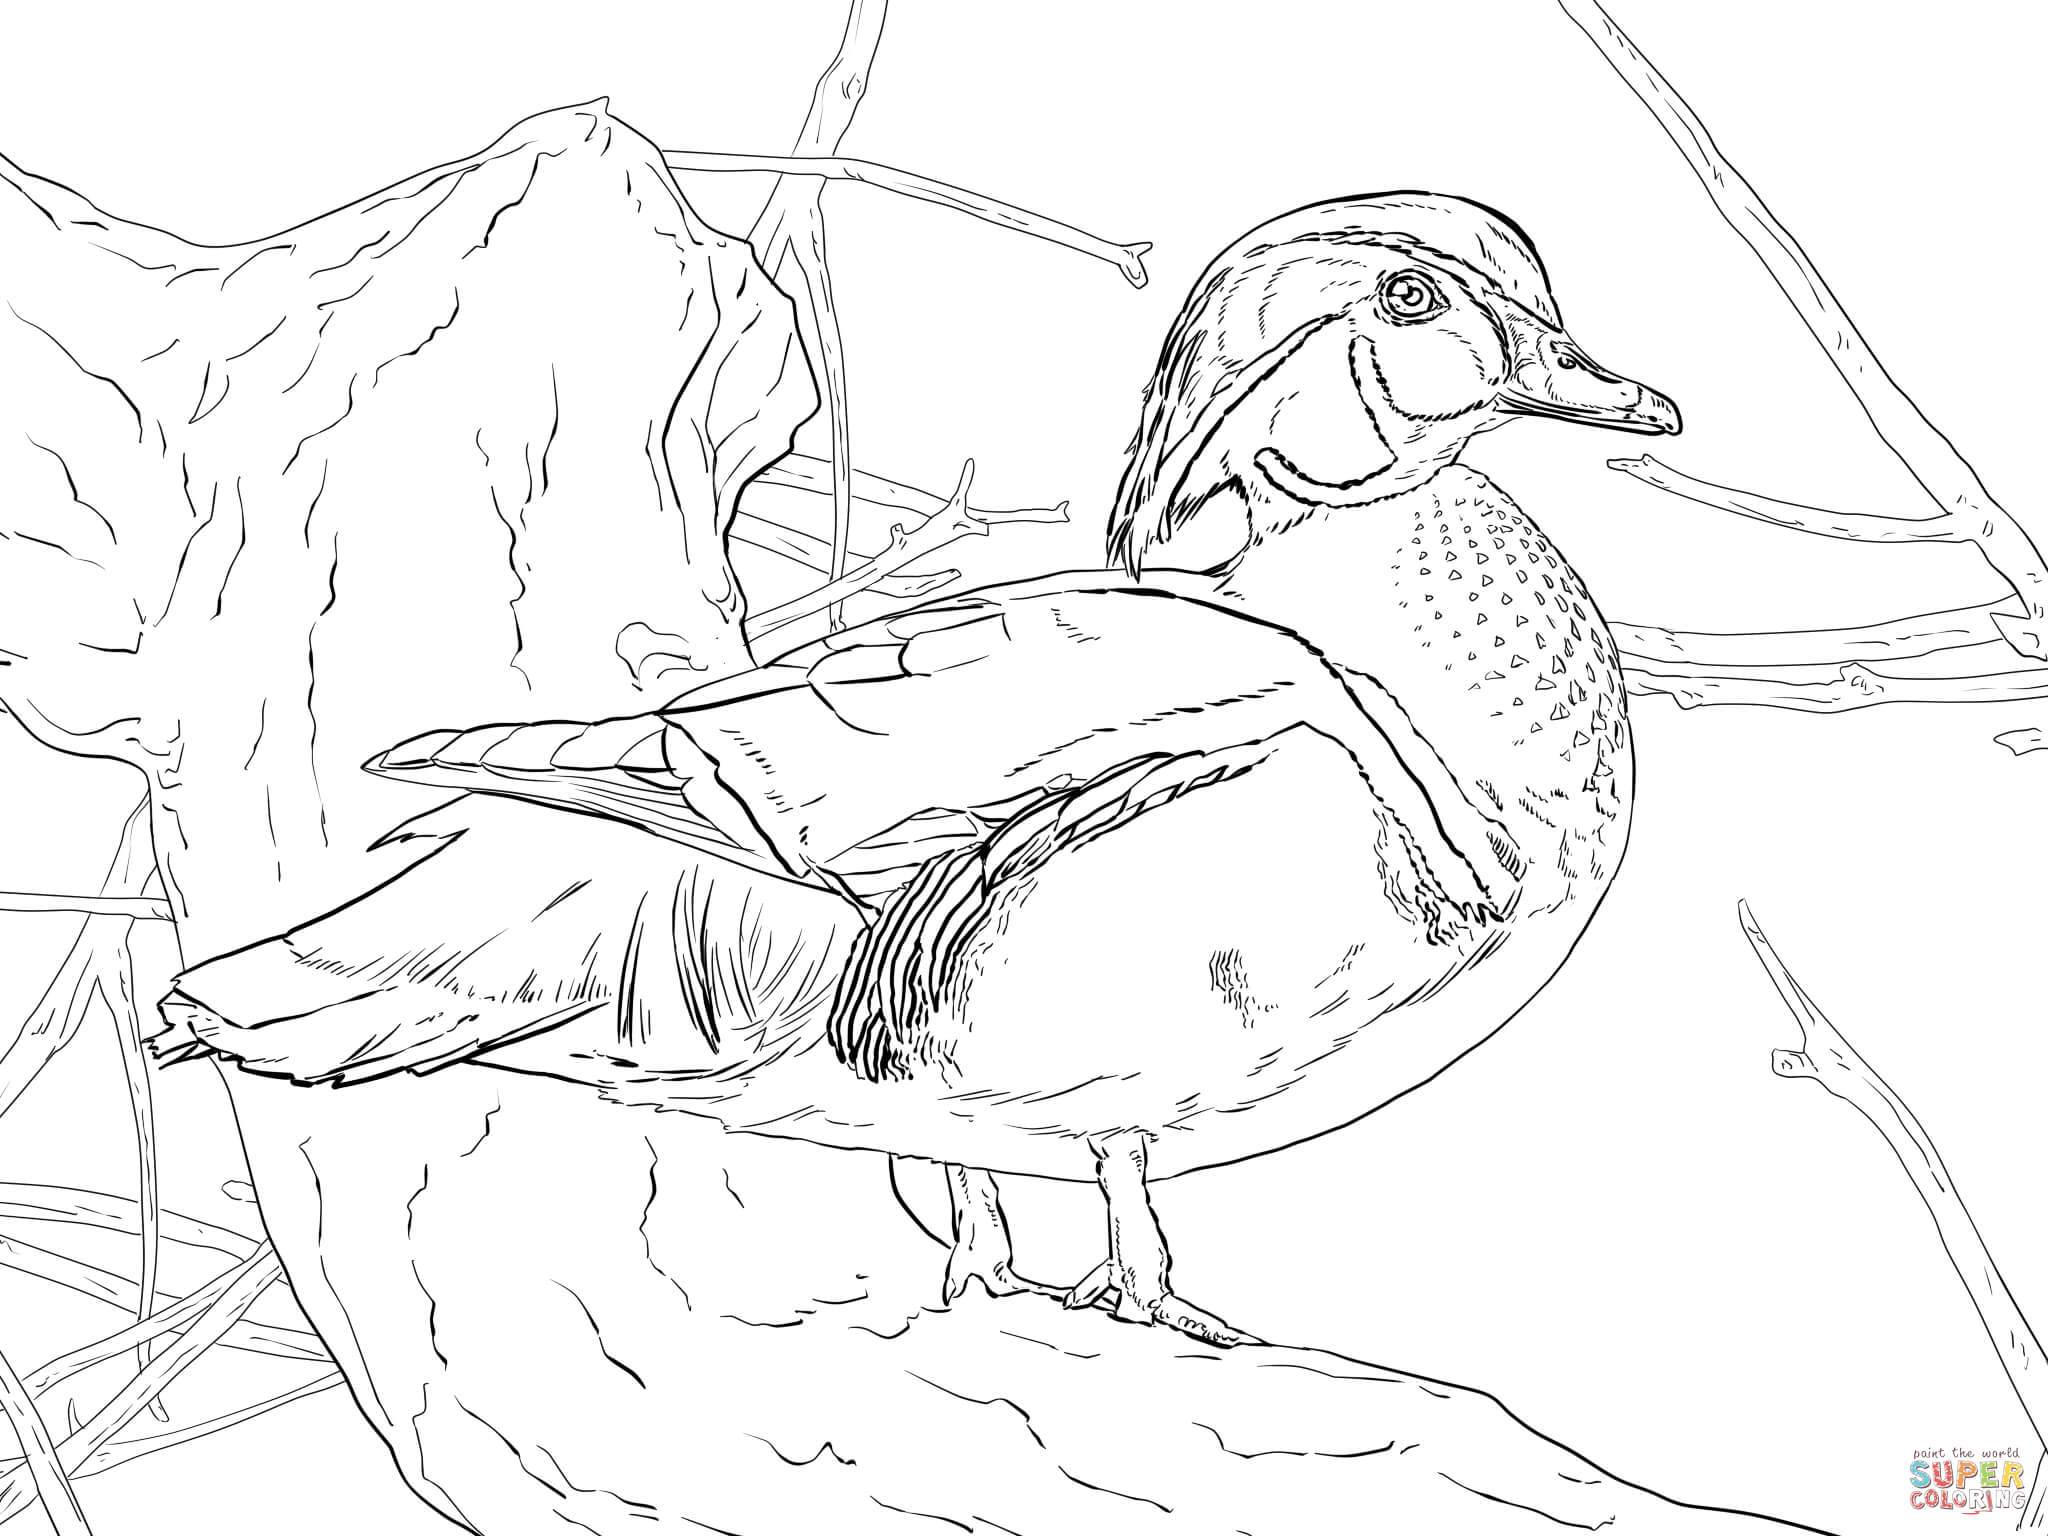 coloring duck line drawing duck outline with images basic drawing for kids coloring duck line drawing